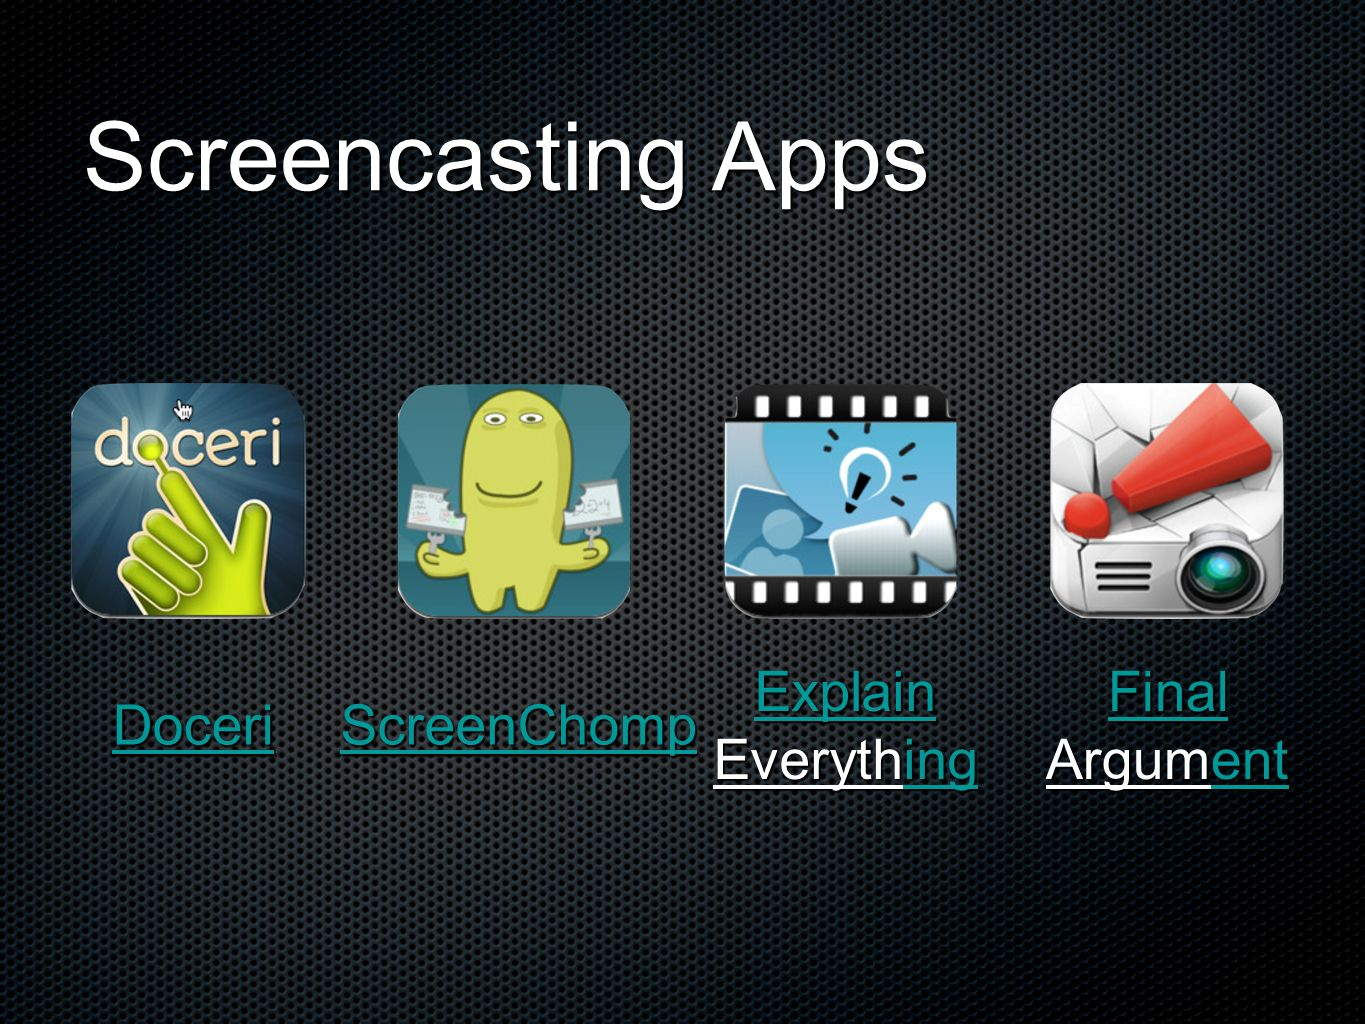 Screencasting Apps Explain Everything Final Argument Doceri